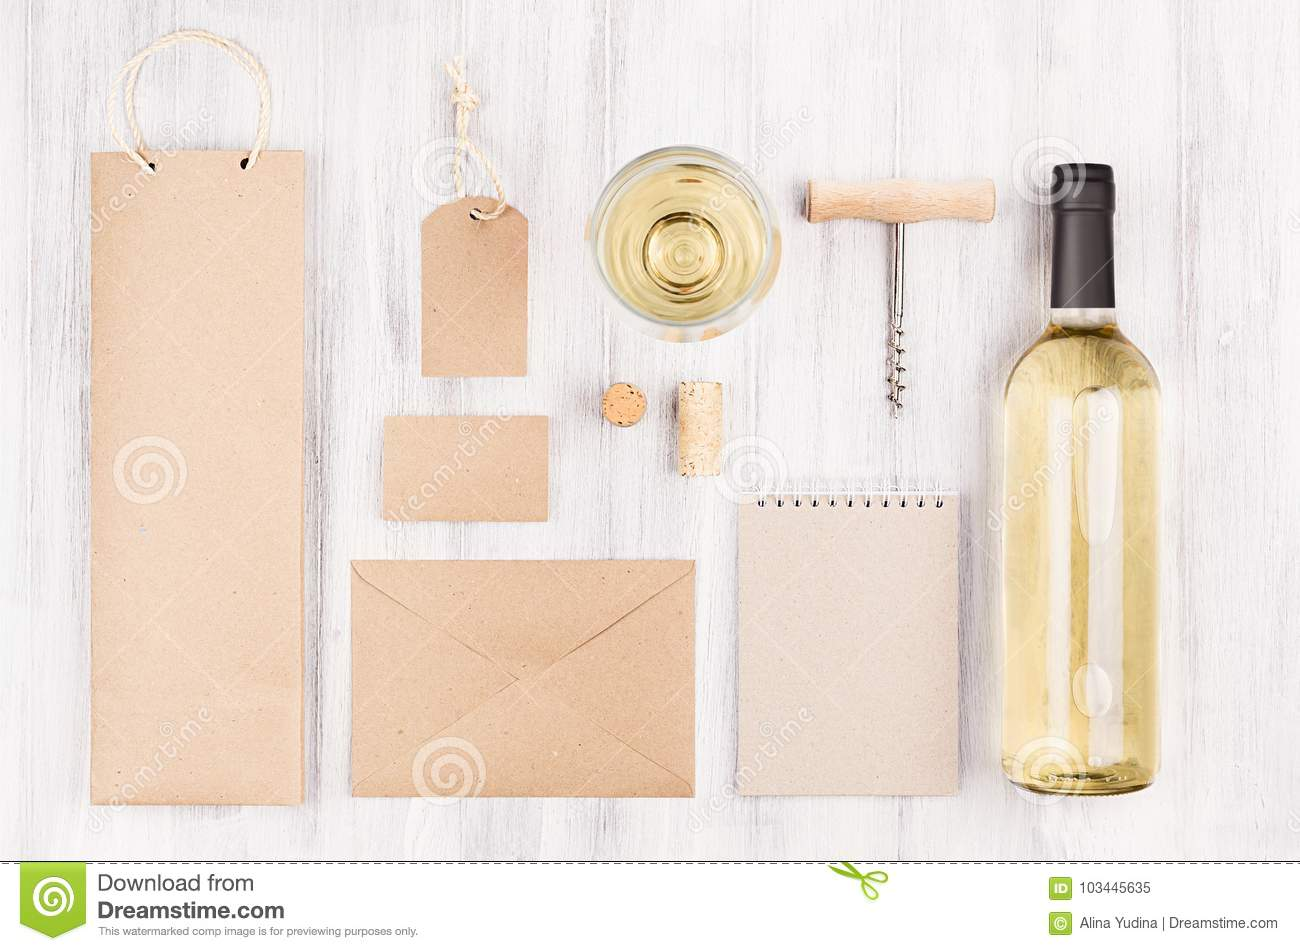 Corporate Identity Template For Wine Industry With Bottle White Wine